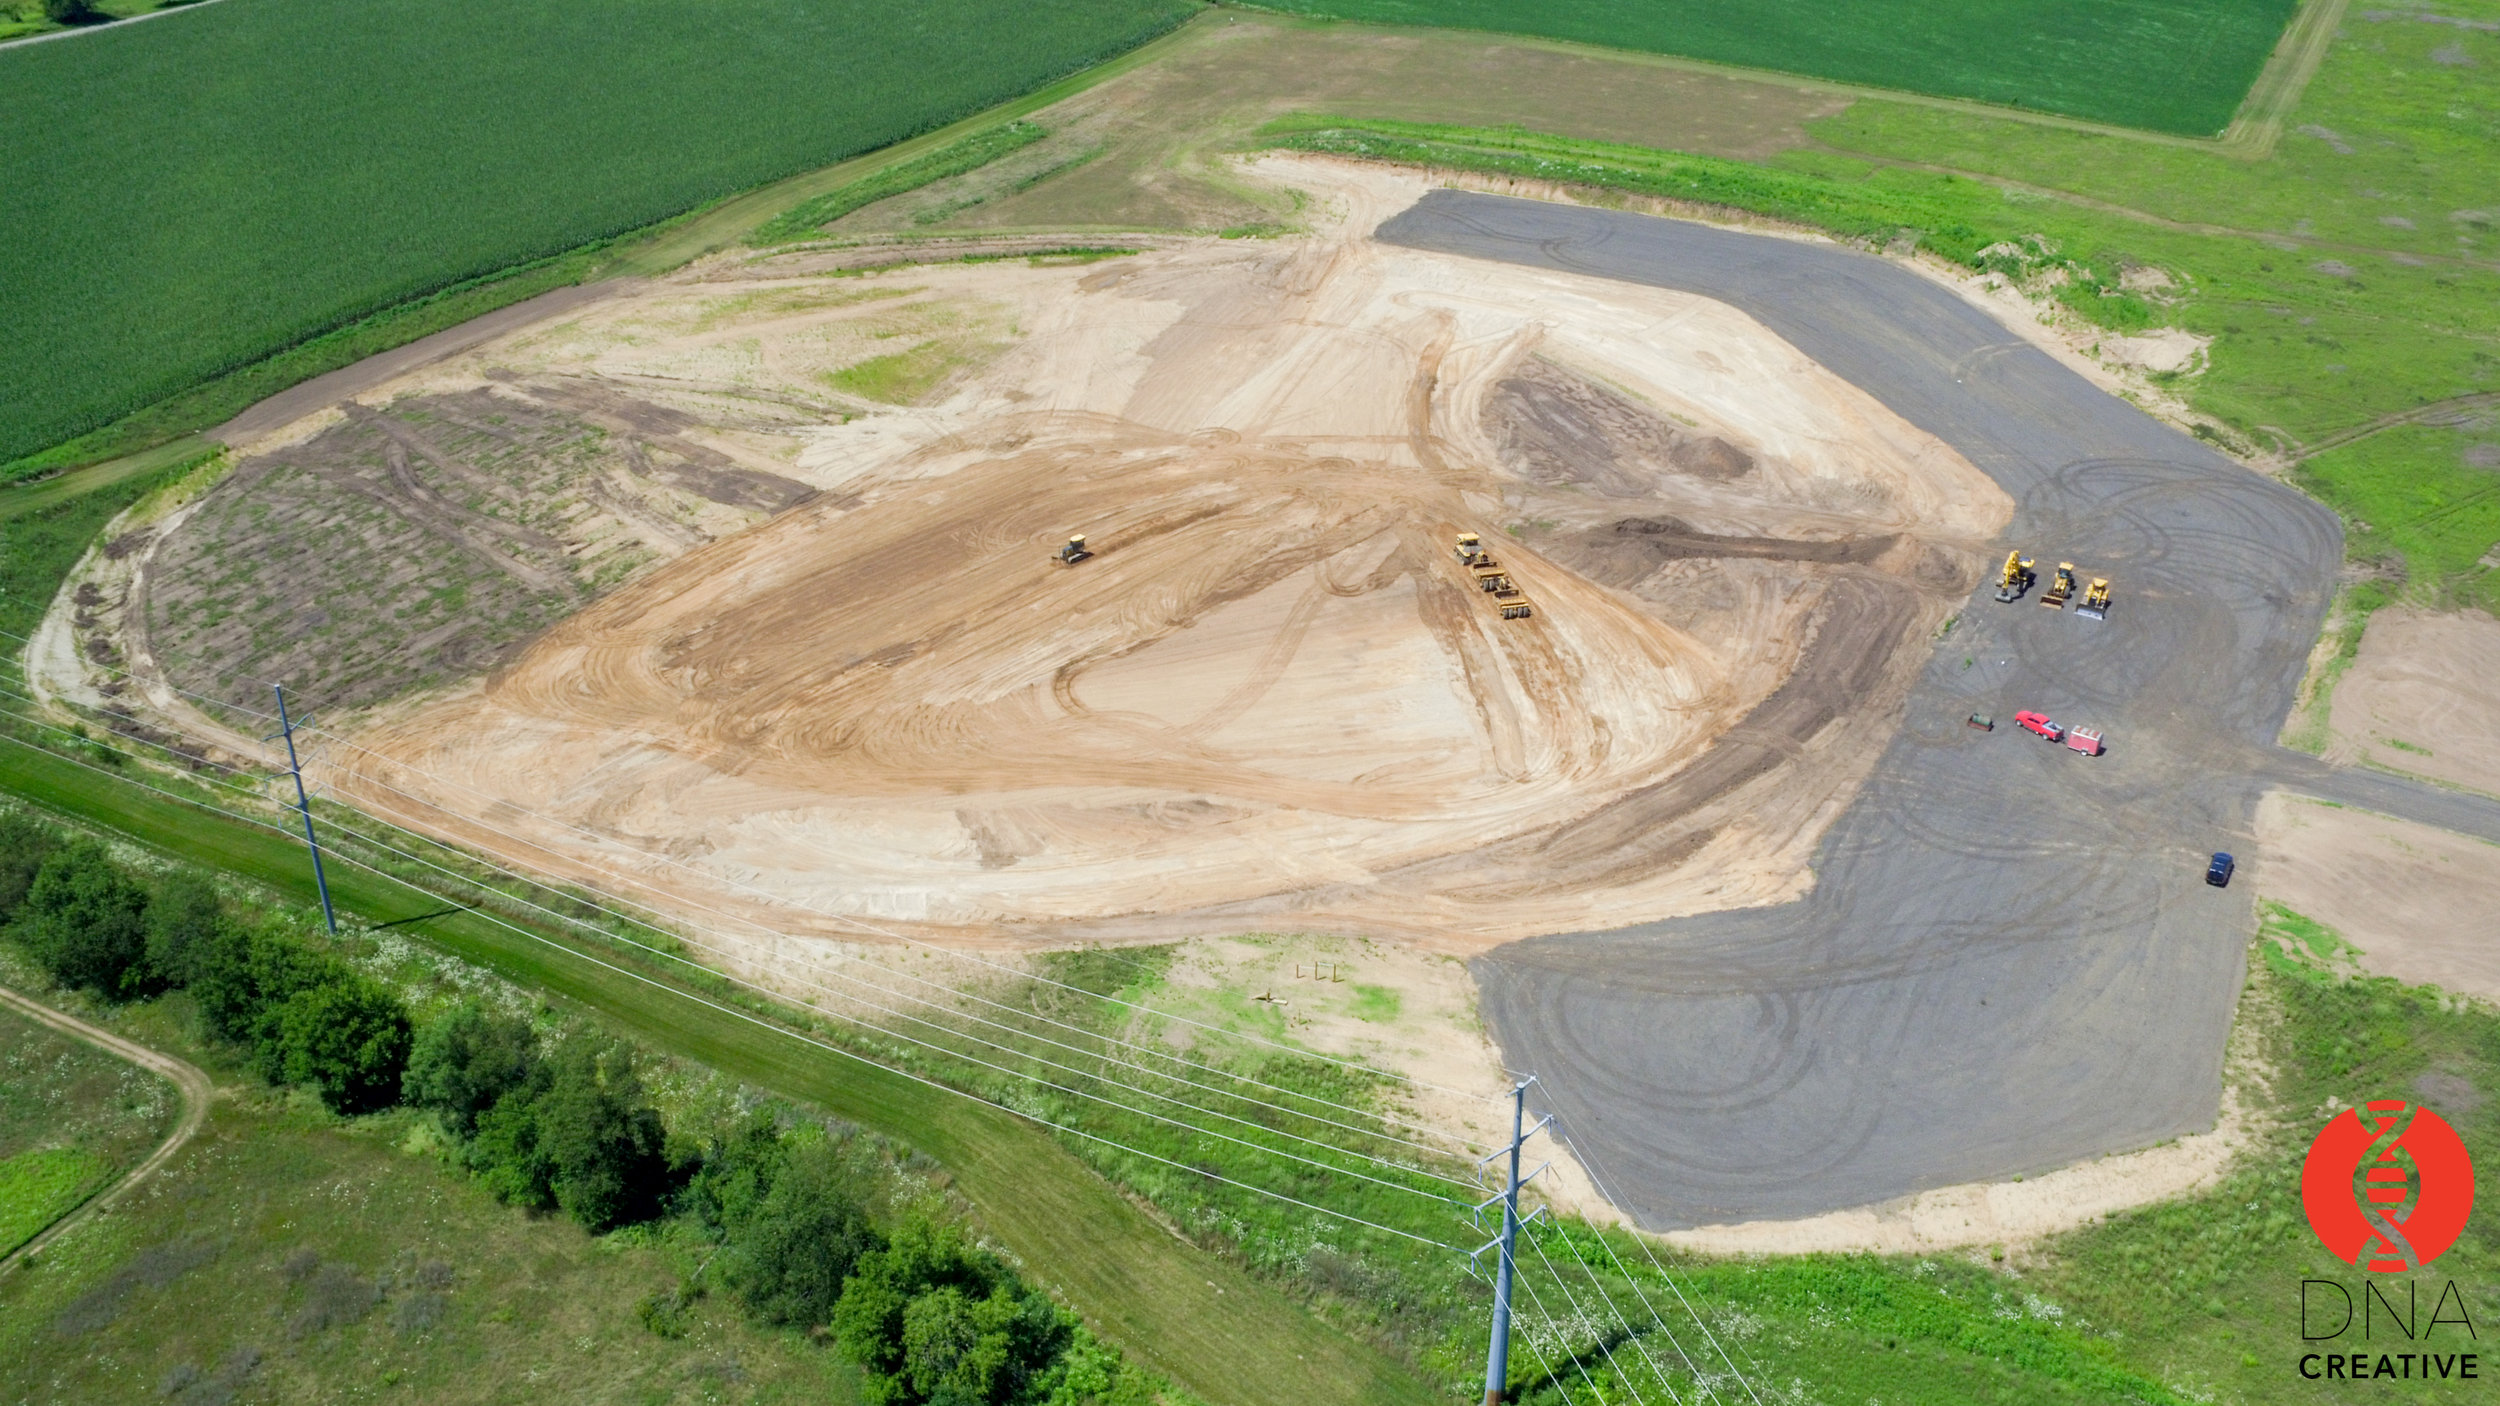 Excavation begins on four baseball/softball fields to be ready for play in fall 2019.